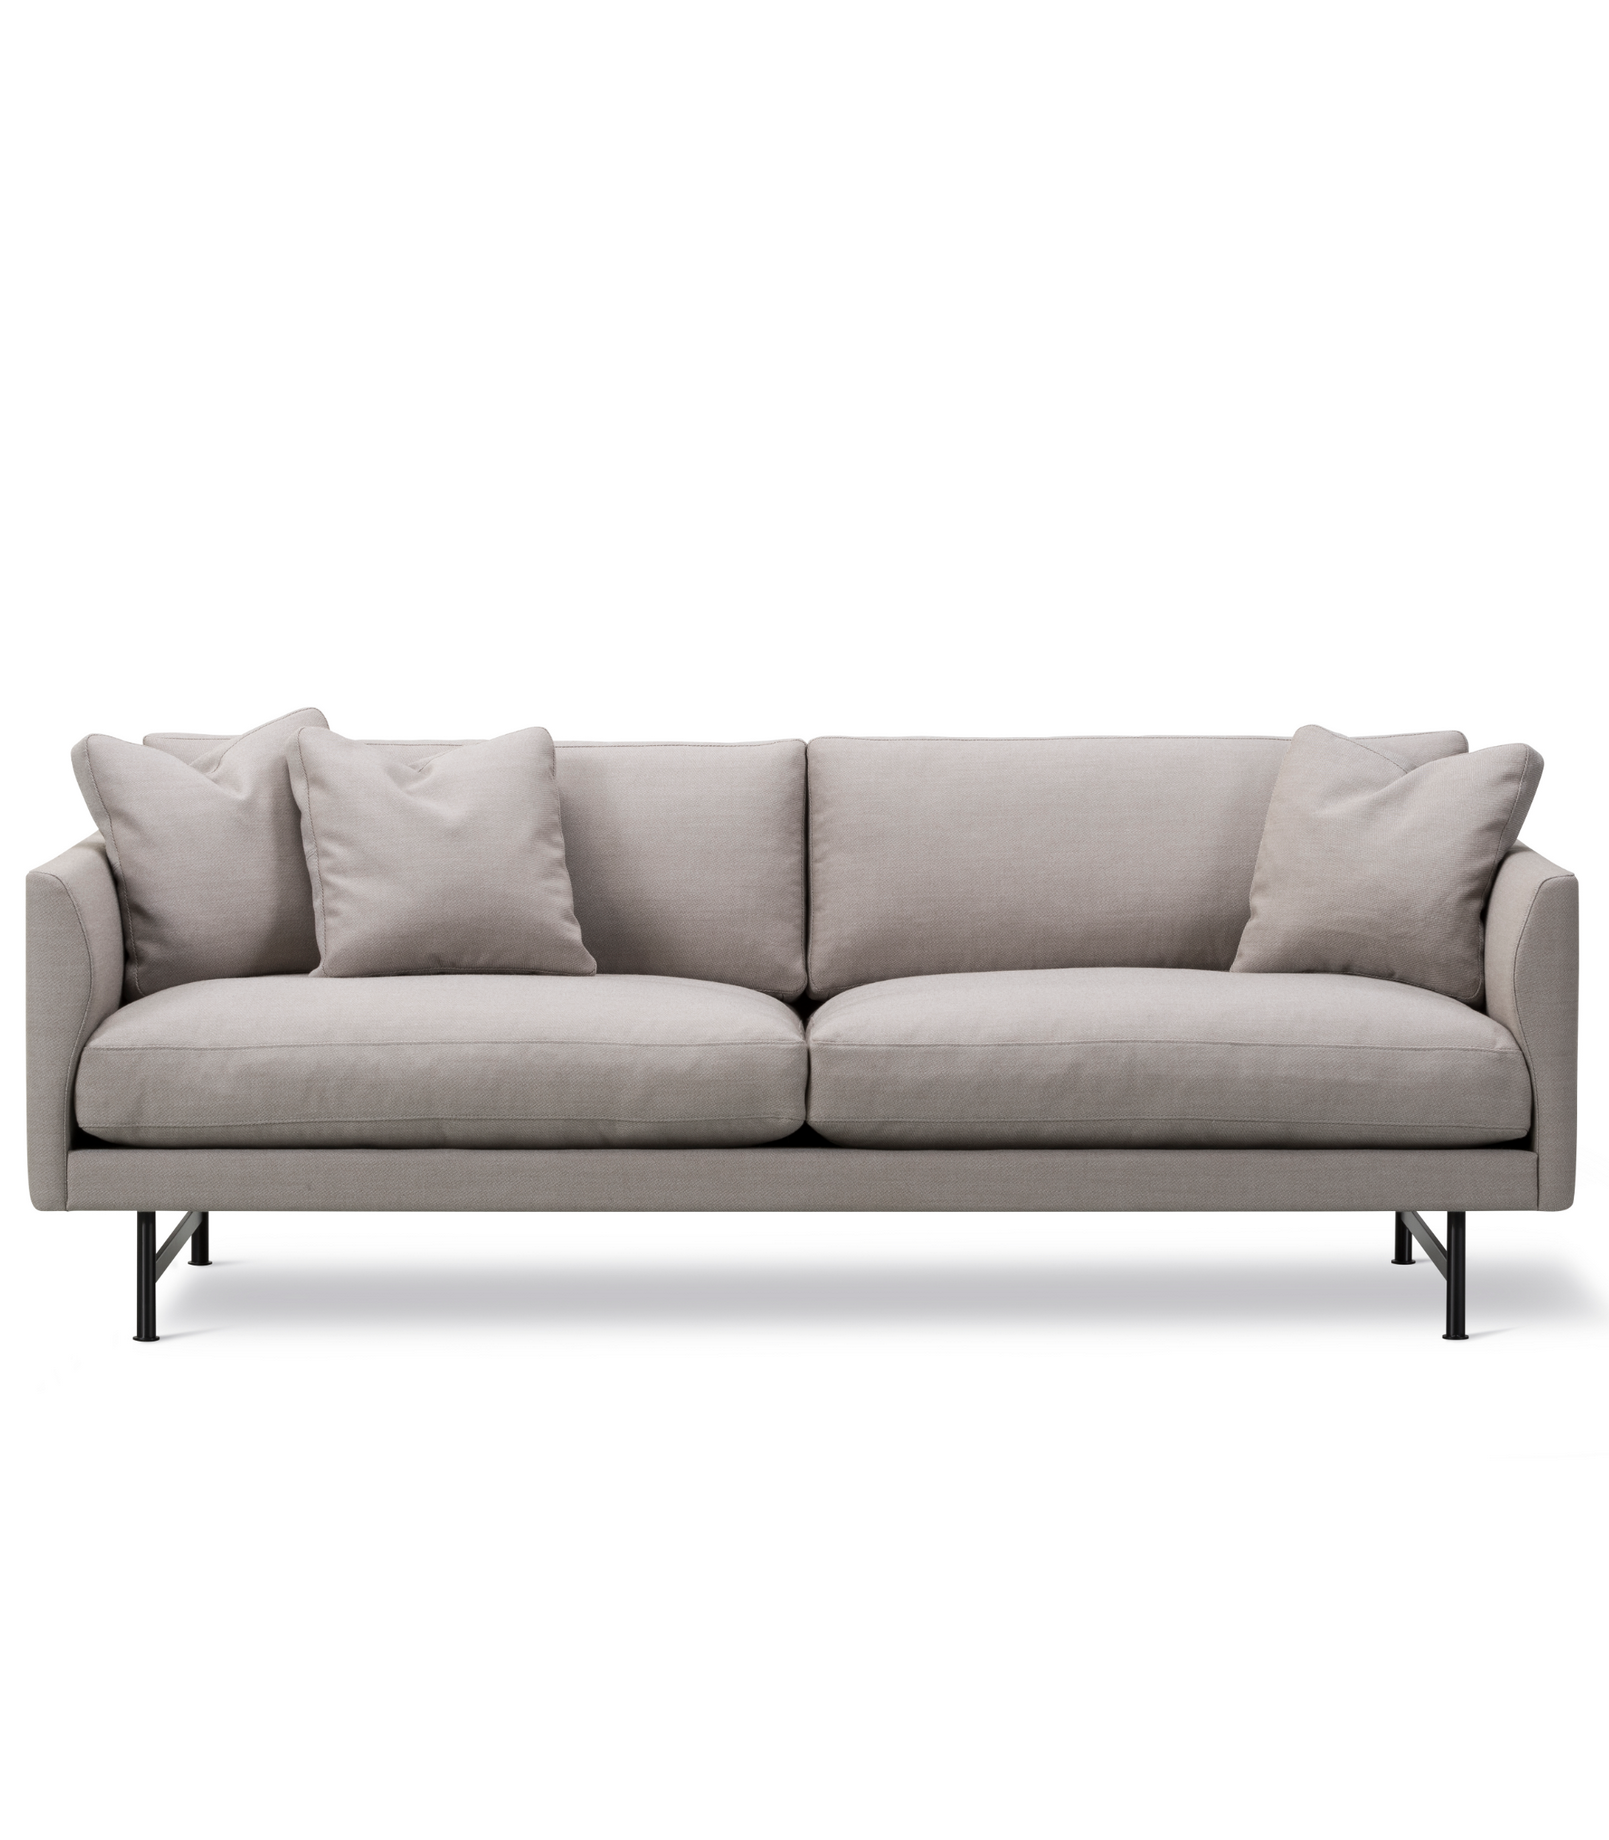 "Fredericia Furniture ""Calmo"" 3. pers. sofa"